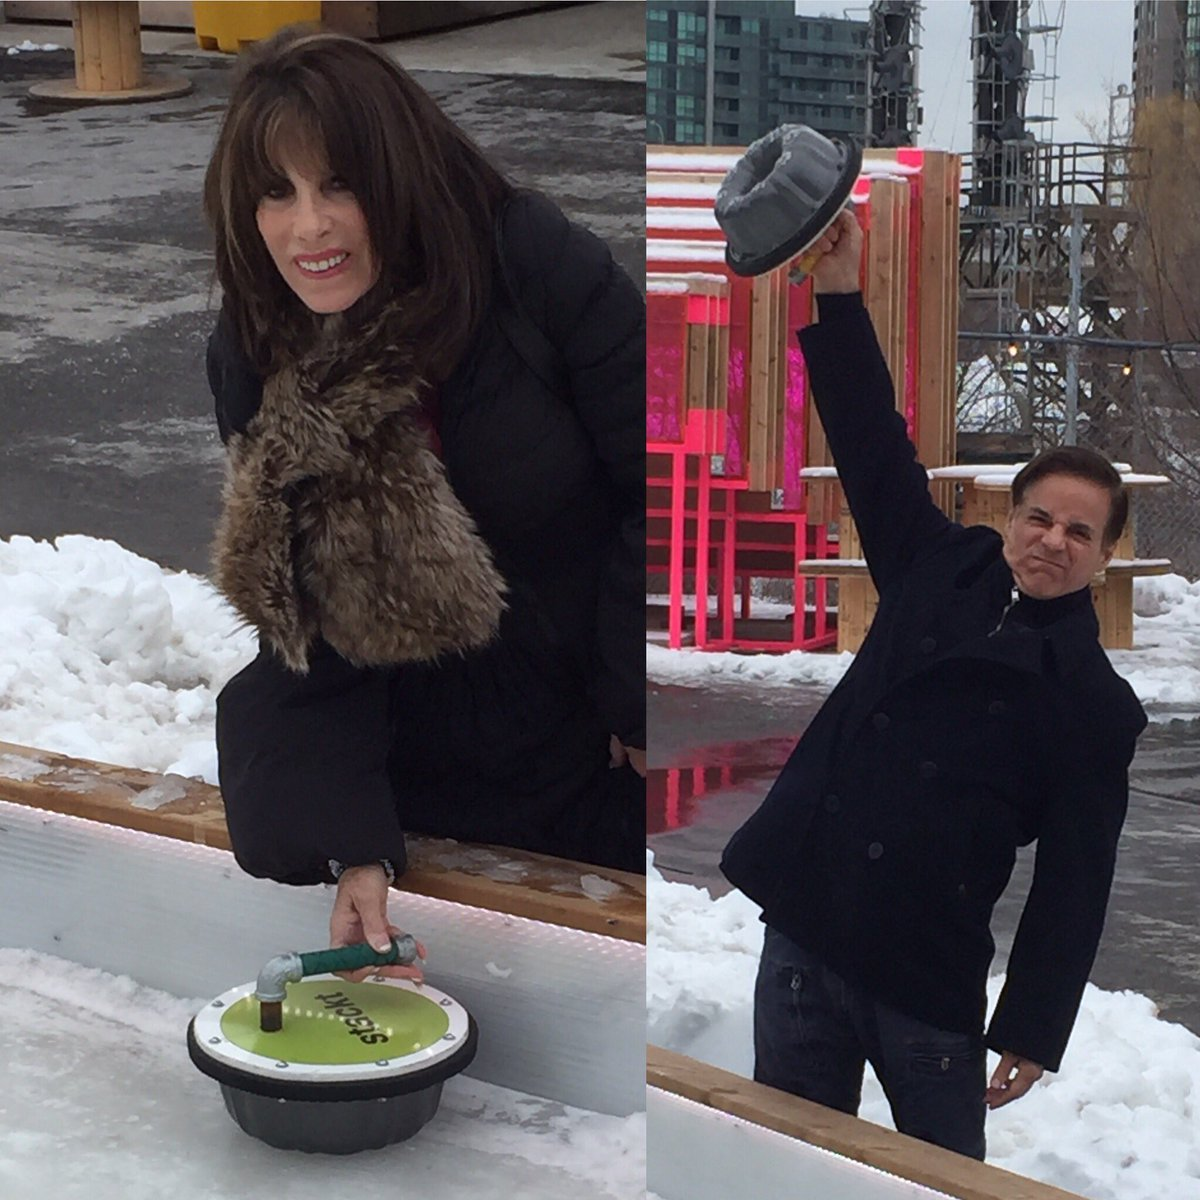 Fun day @stacktmarket  in TO @KATELINDER  & @CJLeBlanc  #yr  #crokicurl  rocked ! TY both u are amazing #OpportuniTea  w Kate Linder & Friends in support of @marchofdimescda  sold out was an amazing afternoon  @KatesHighTea